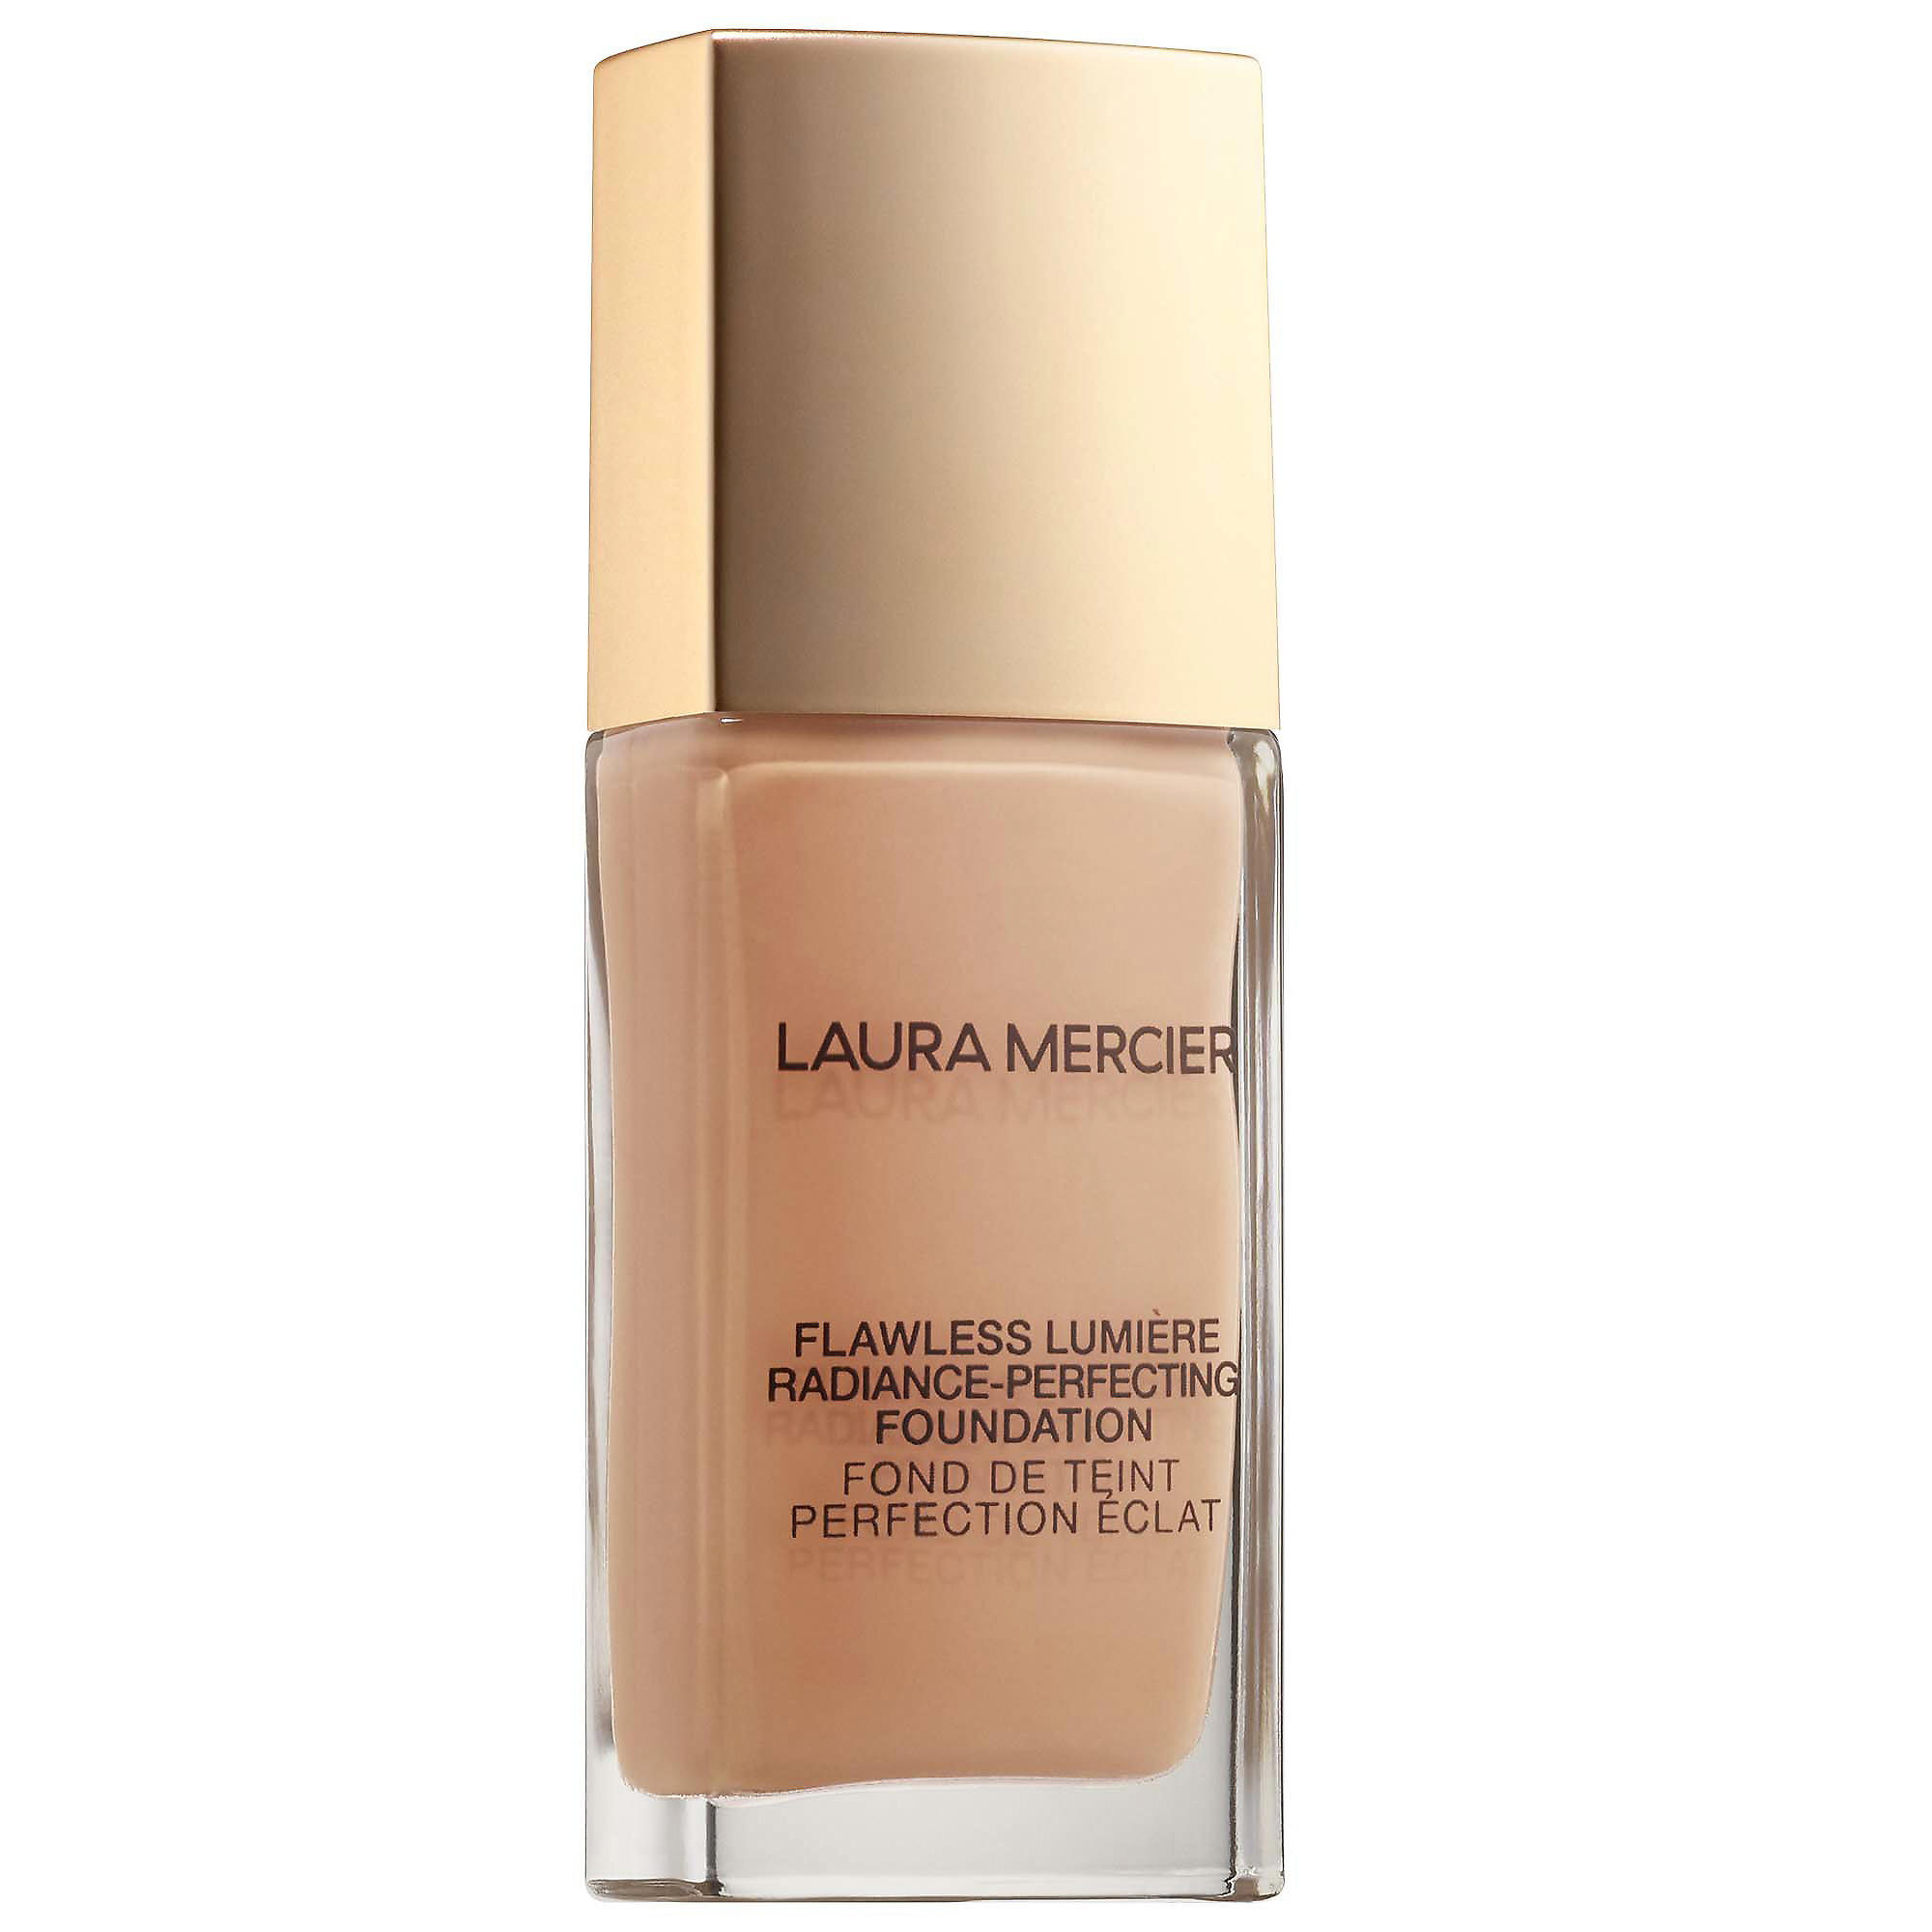 Laura Mercier Flawless Lumiere Radiance-Perfecting Foundation Shell 1C1